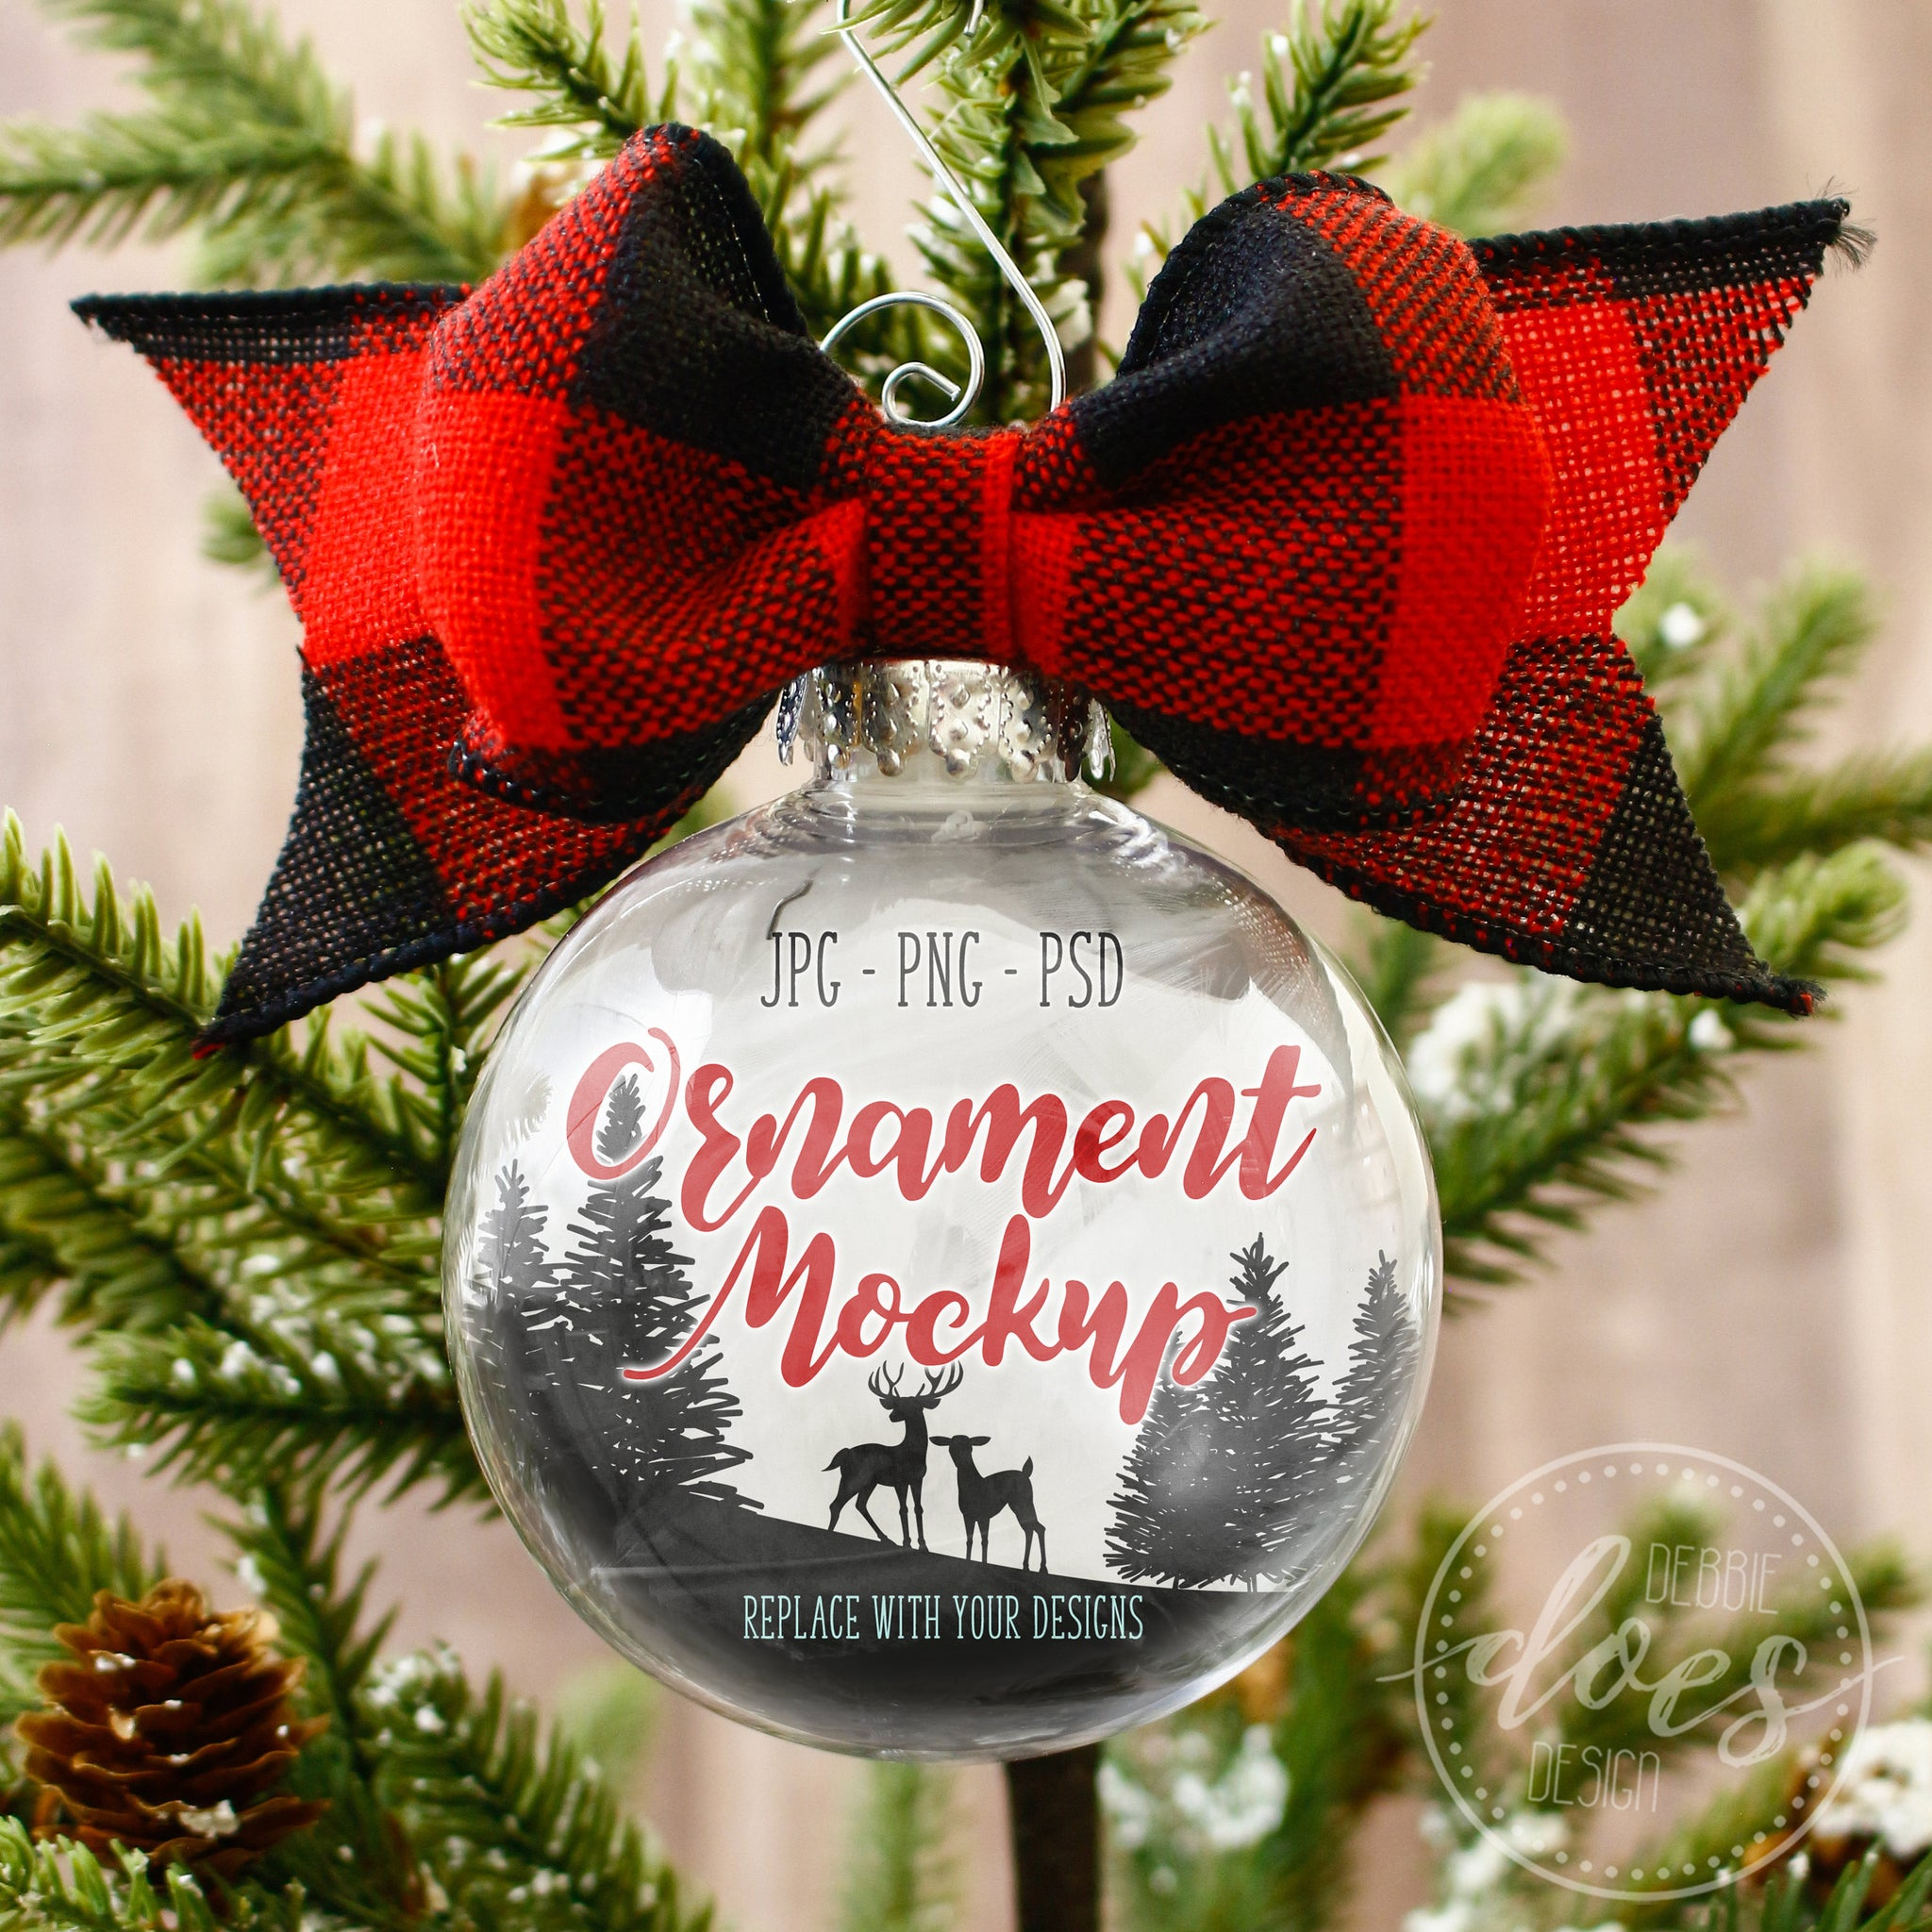 Ornament Mockup with Buffalo Plaid Bow | Transparent Ornament Mockup | Blank Mockup Photo Download